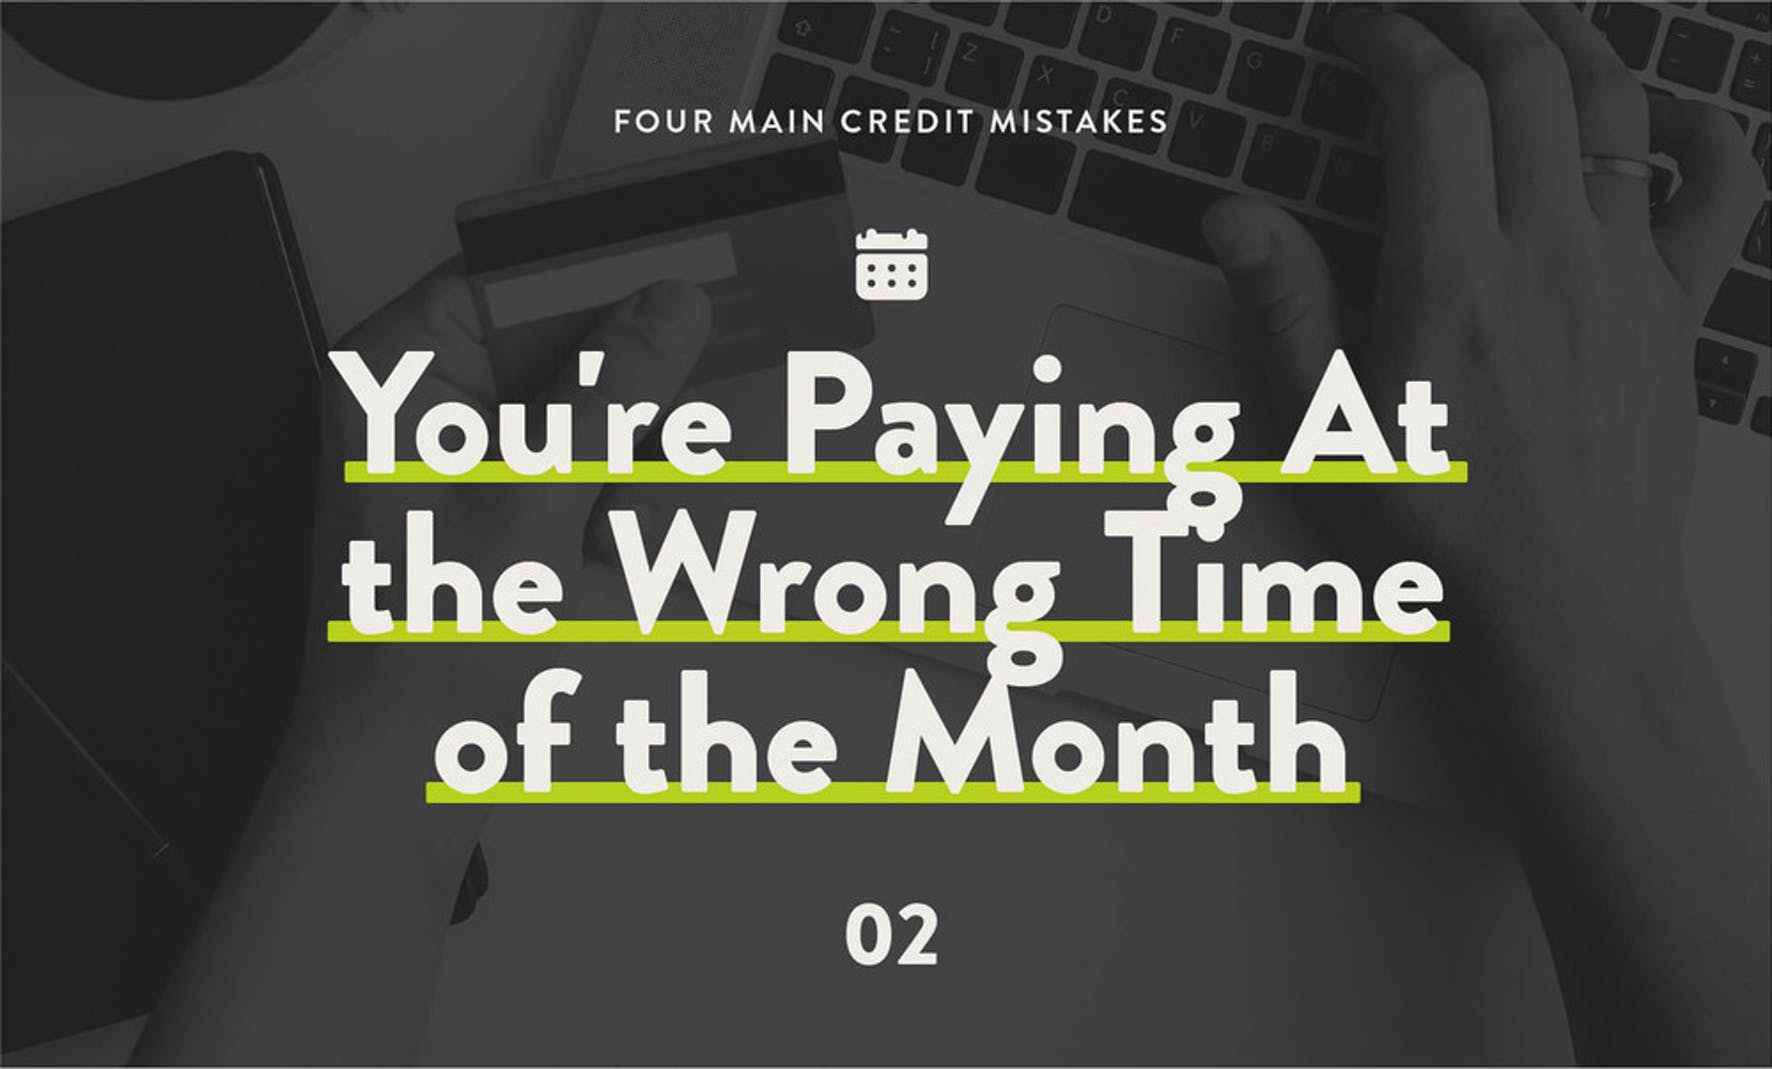 4 main credit mistakes: you are paying at the wrong time of the month